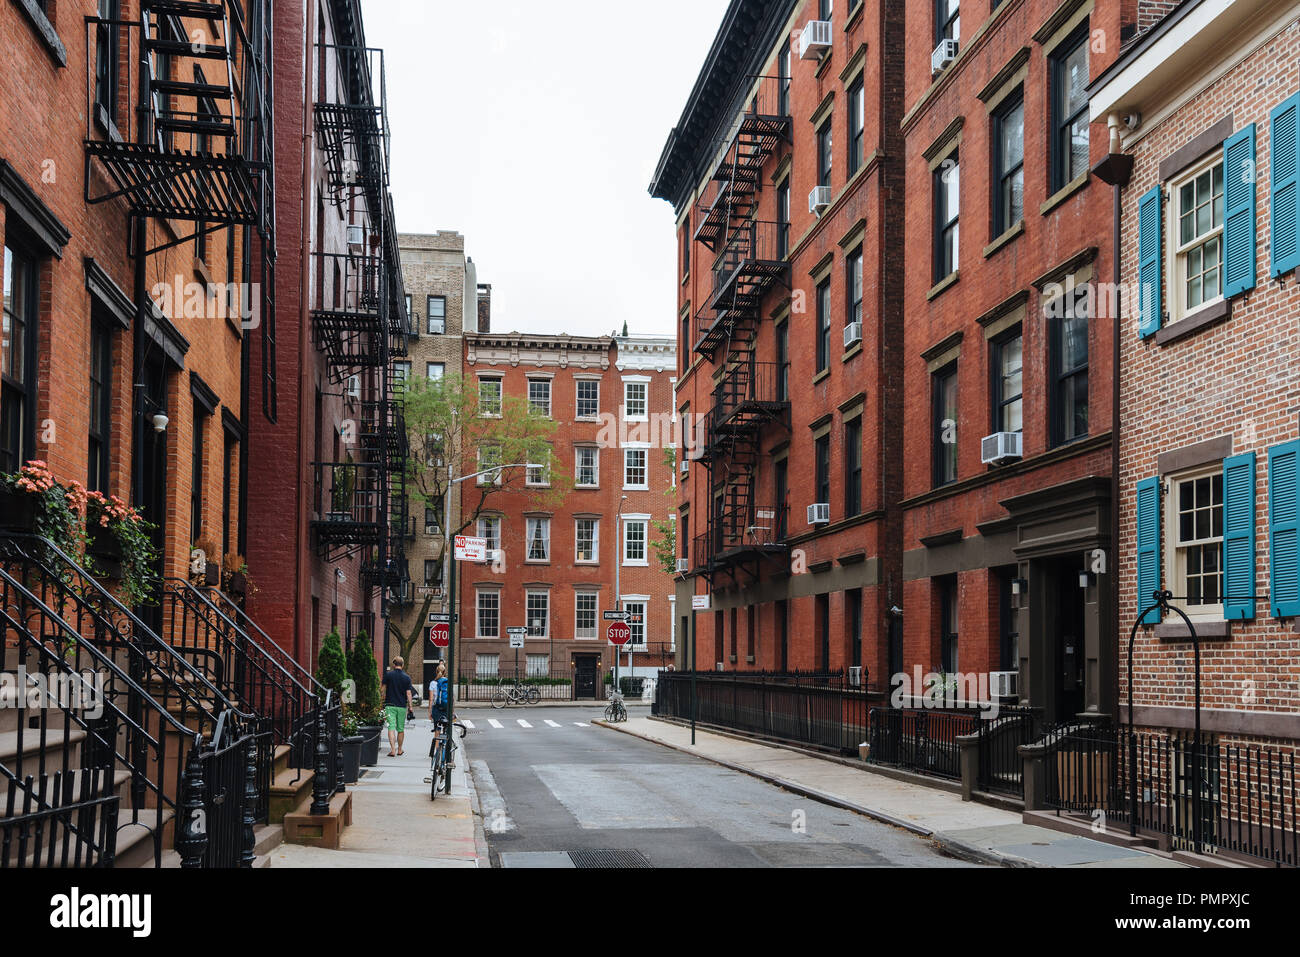 New York City, USA - June 22, 2018: Beautiful view of historic houses along Gay street in Greenwich Village Stock Photo